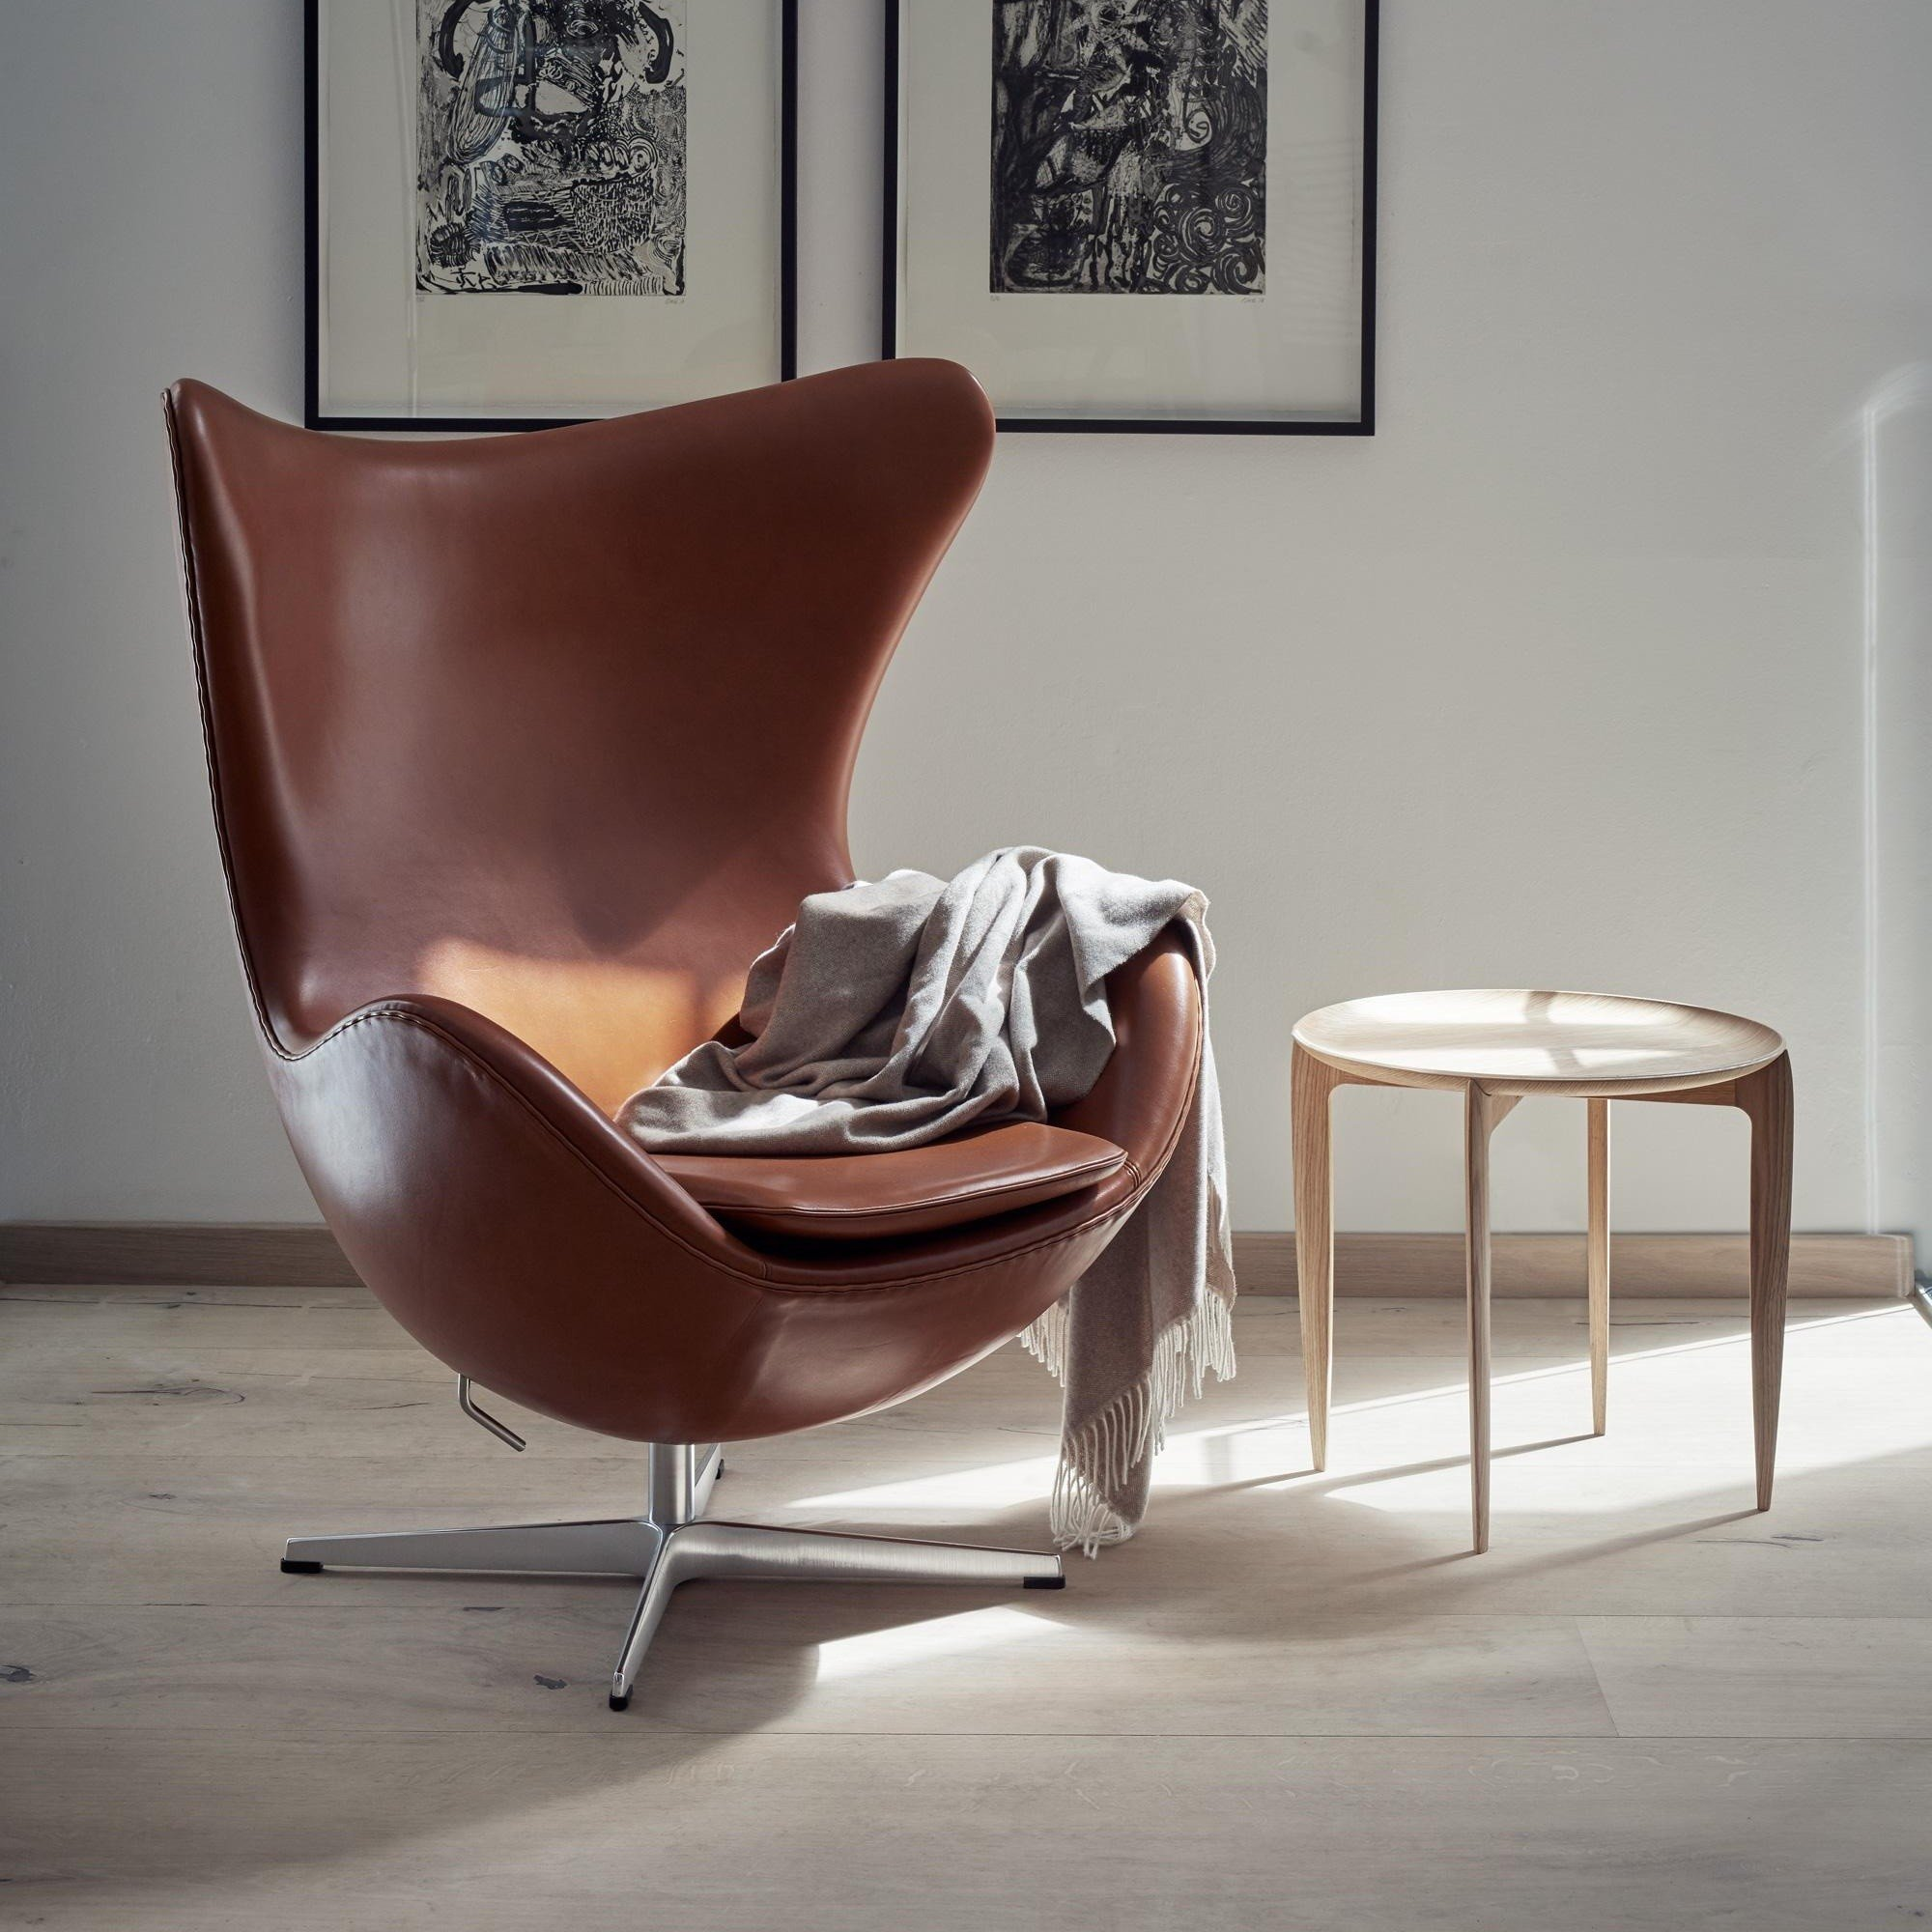 fritz hansen aktion egg chair das ei sessel hocker leder ambientedirect. Black Bedroom Furniture Sets. Home Design Ideas